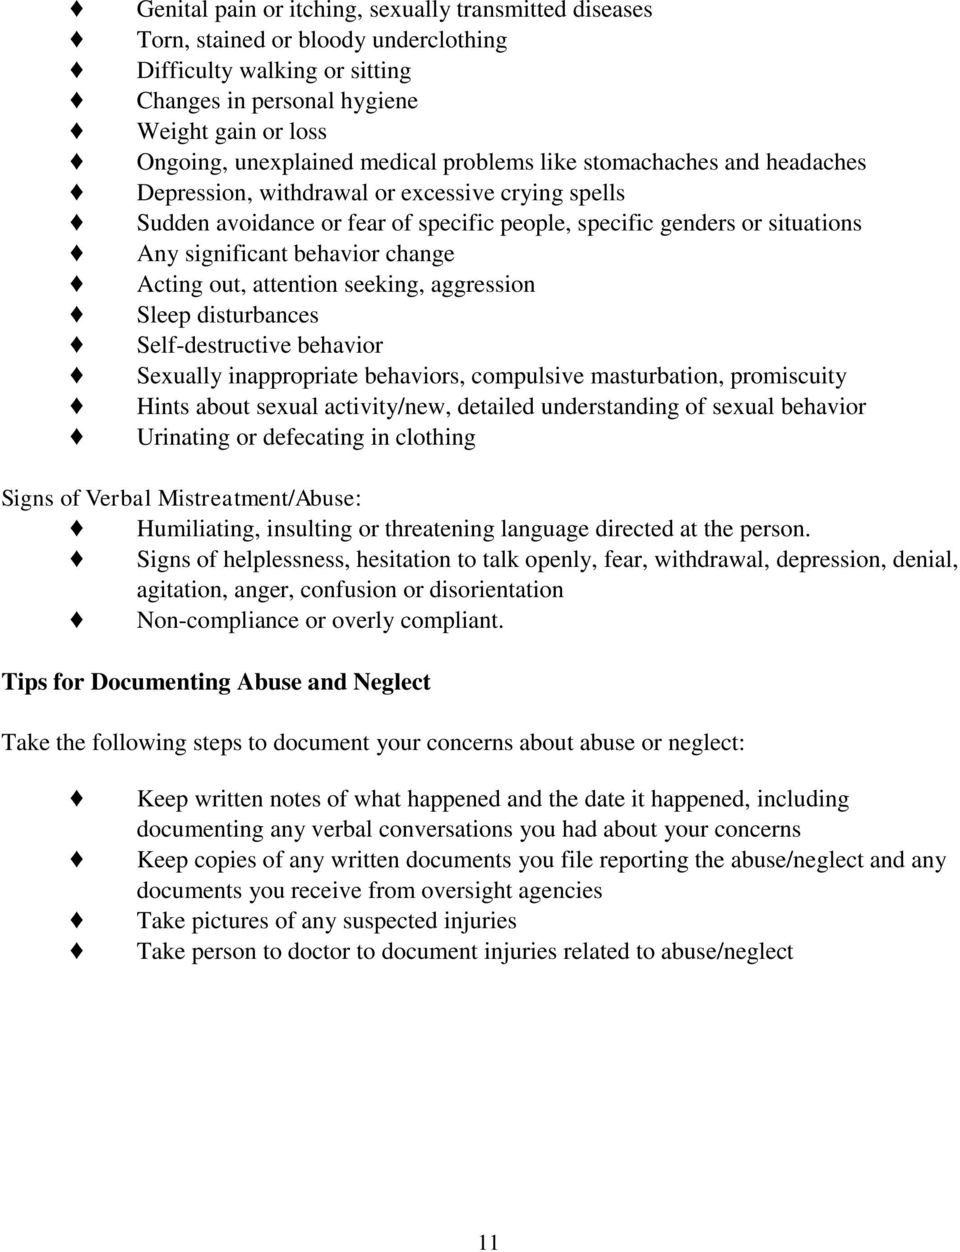 Acting out, attention seeking, aggression Sleep disturbances Self-destructive behavior Sexually inappropriate behaviors, compulsive masturbation, promiscuity Hints about sexual activity/new, detailed